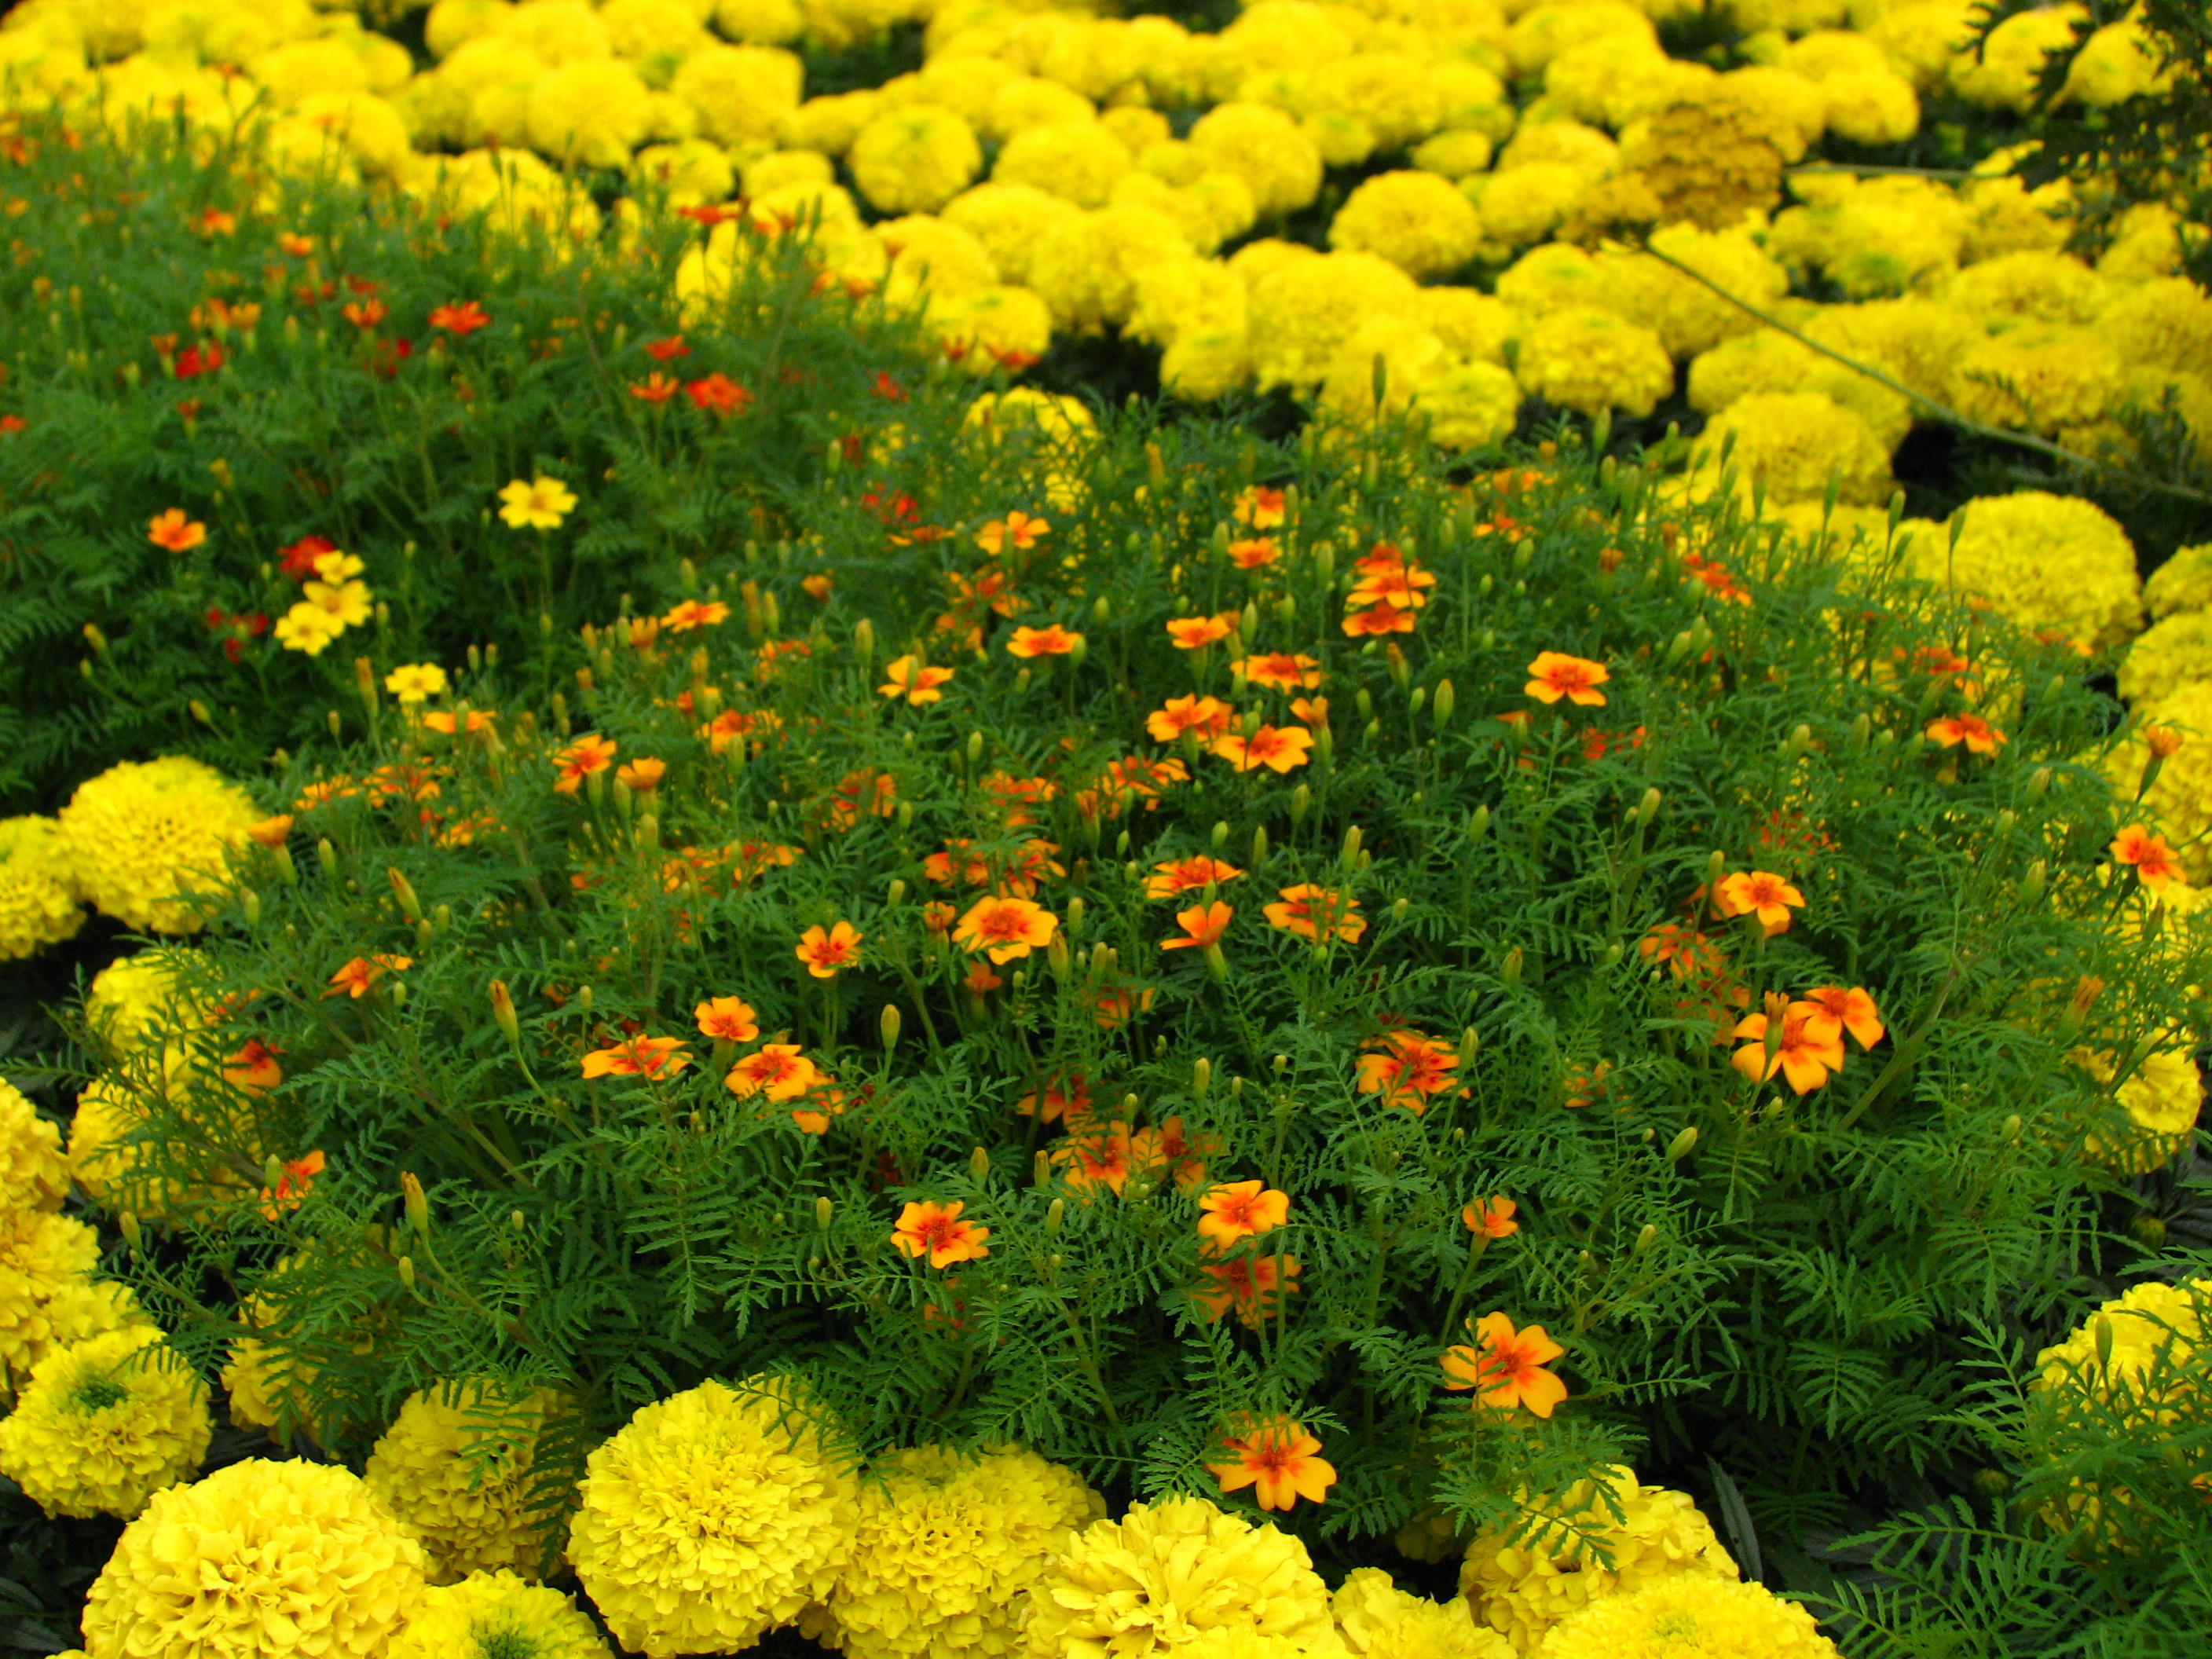 File:Tagetes in flowerbed border 02.JPG - Wikimedia Commons